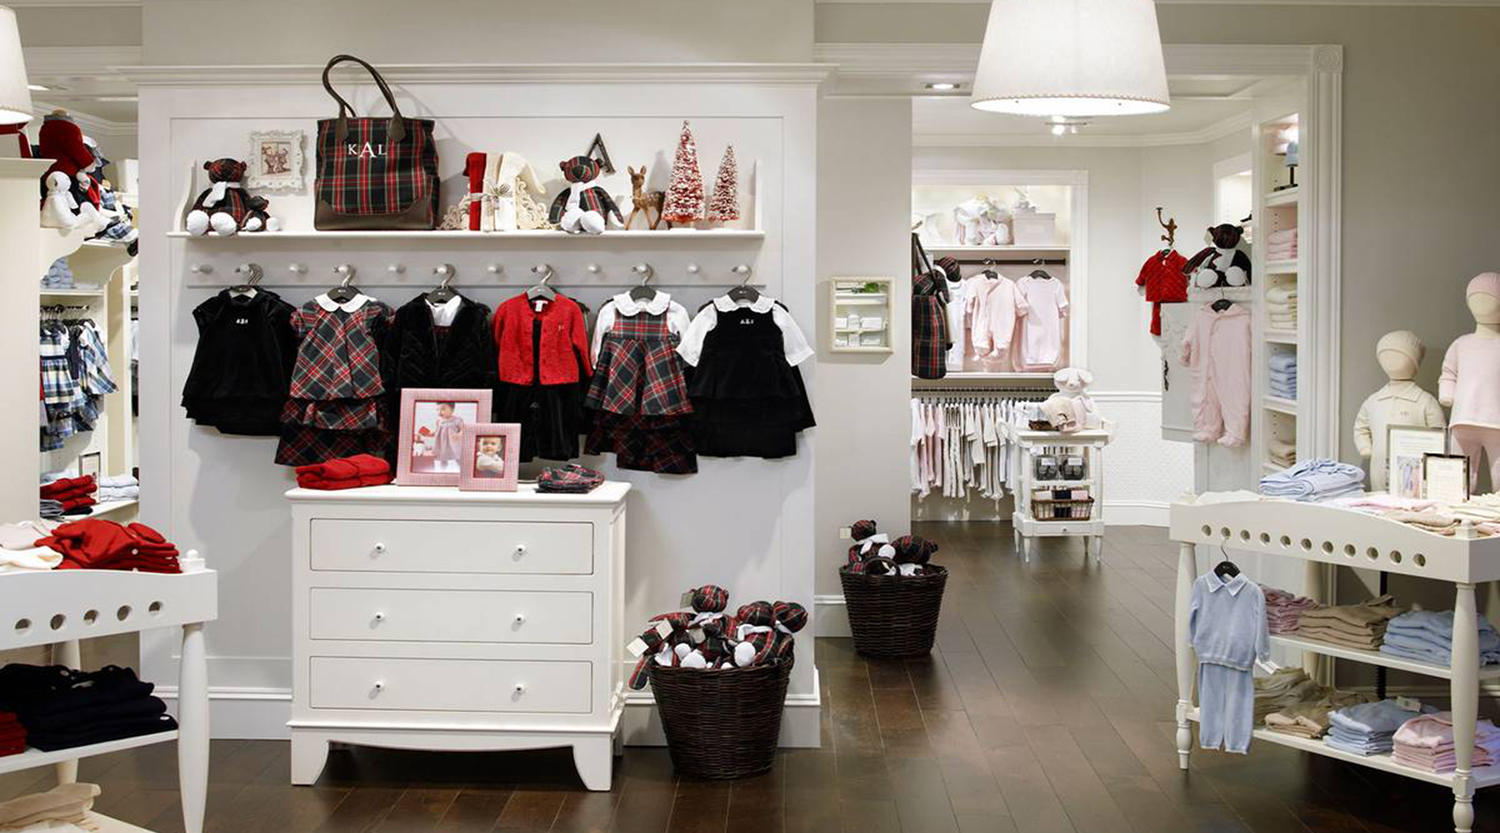 Threads Baby Clothing Stores Design - Boutique Store Design